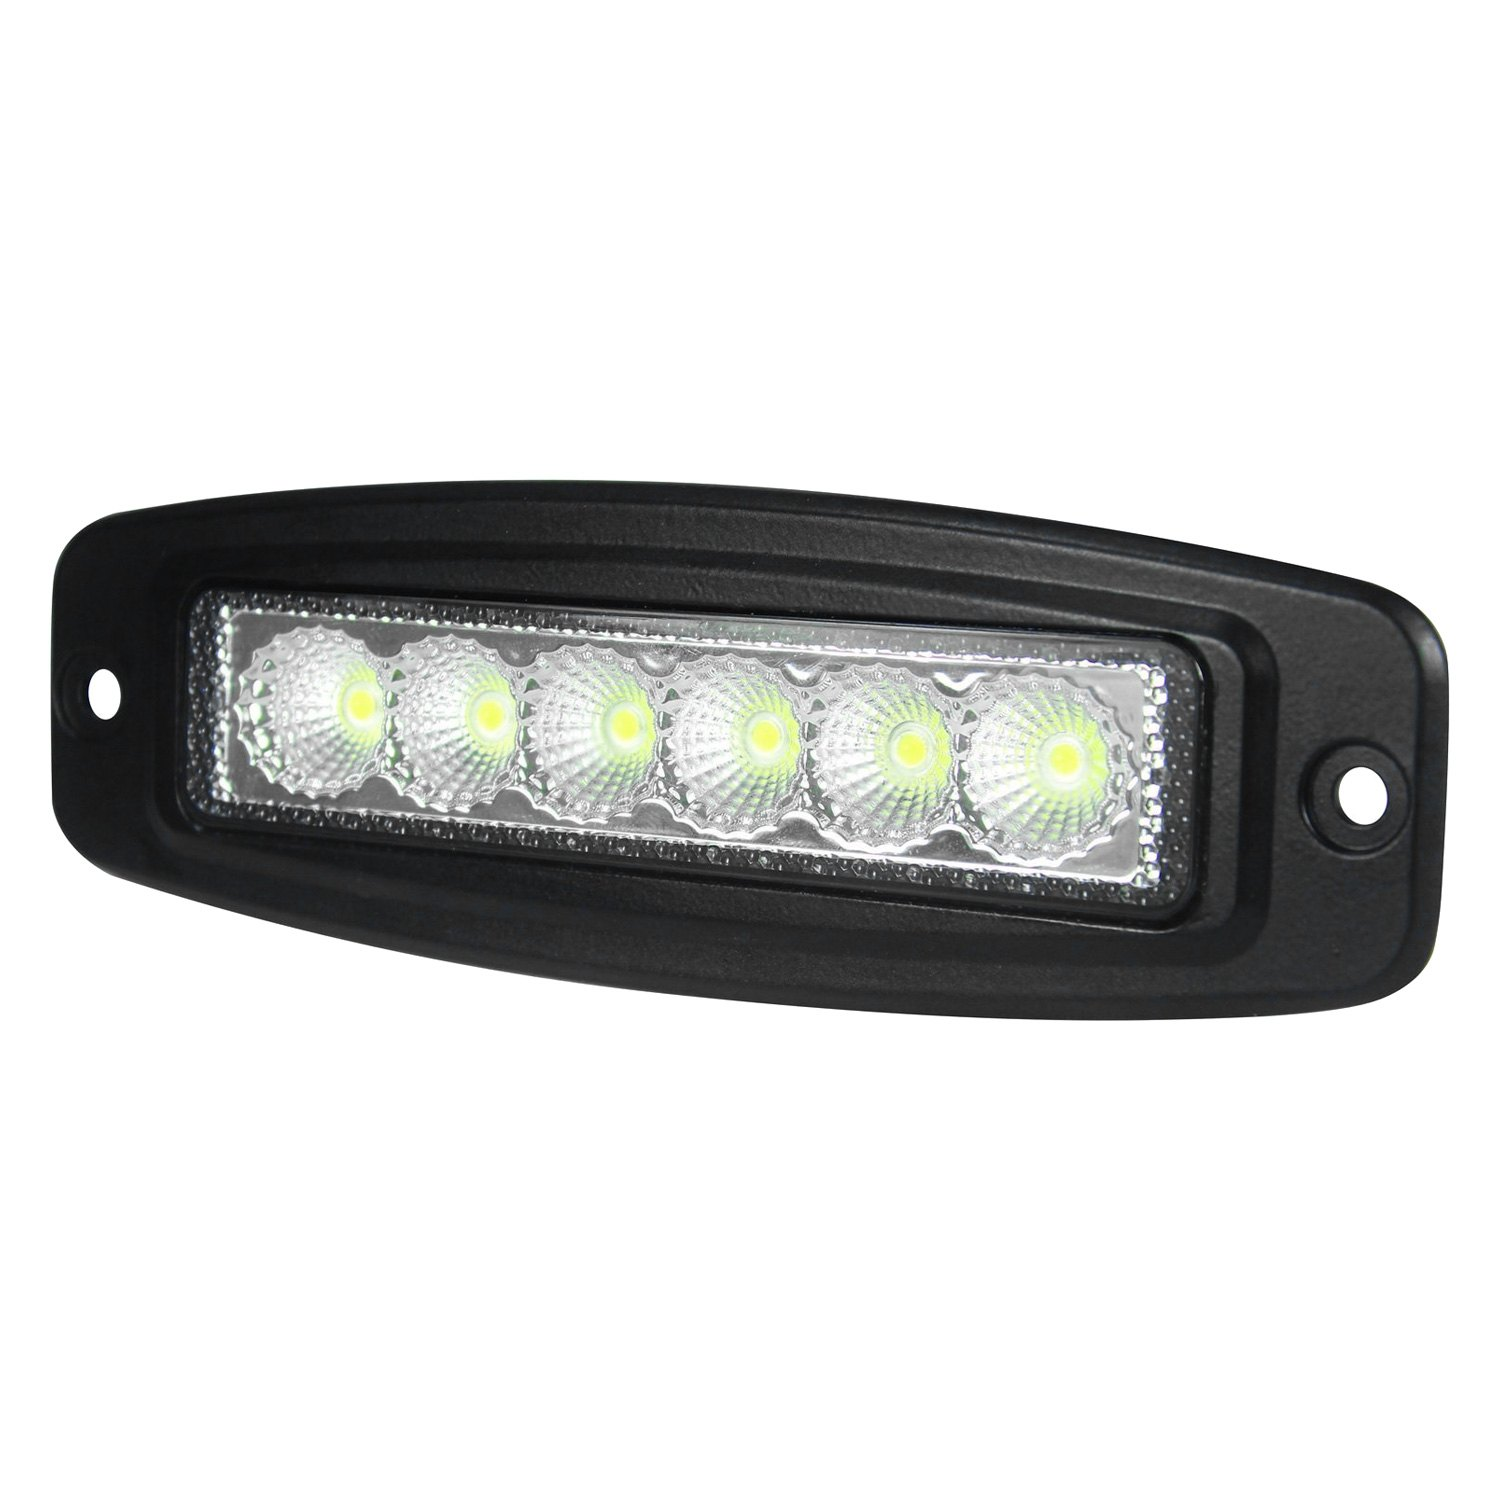 Hella valuefit mini led light bar